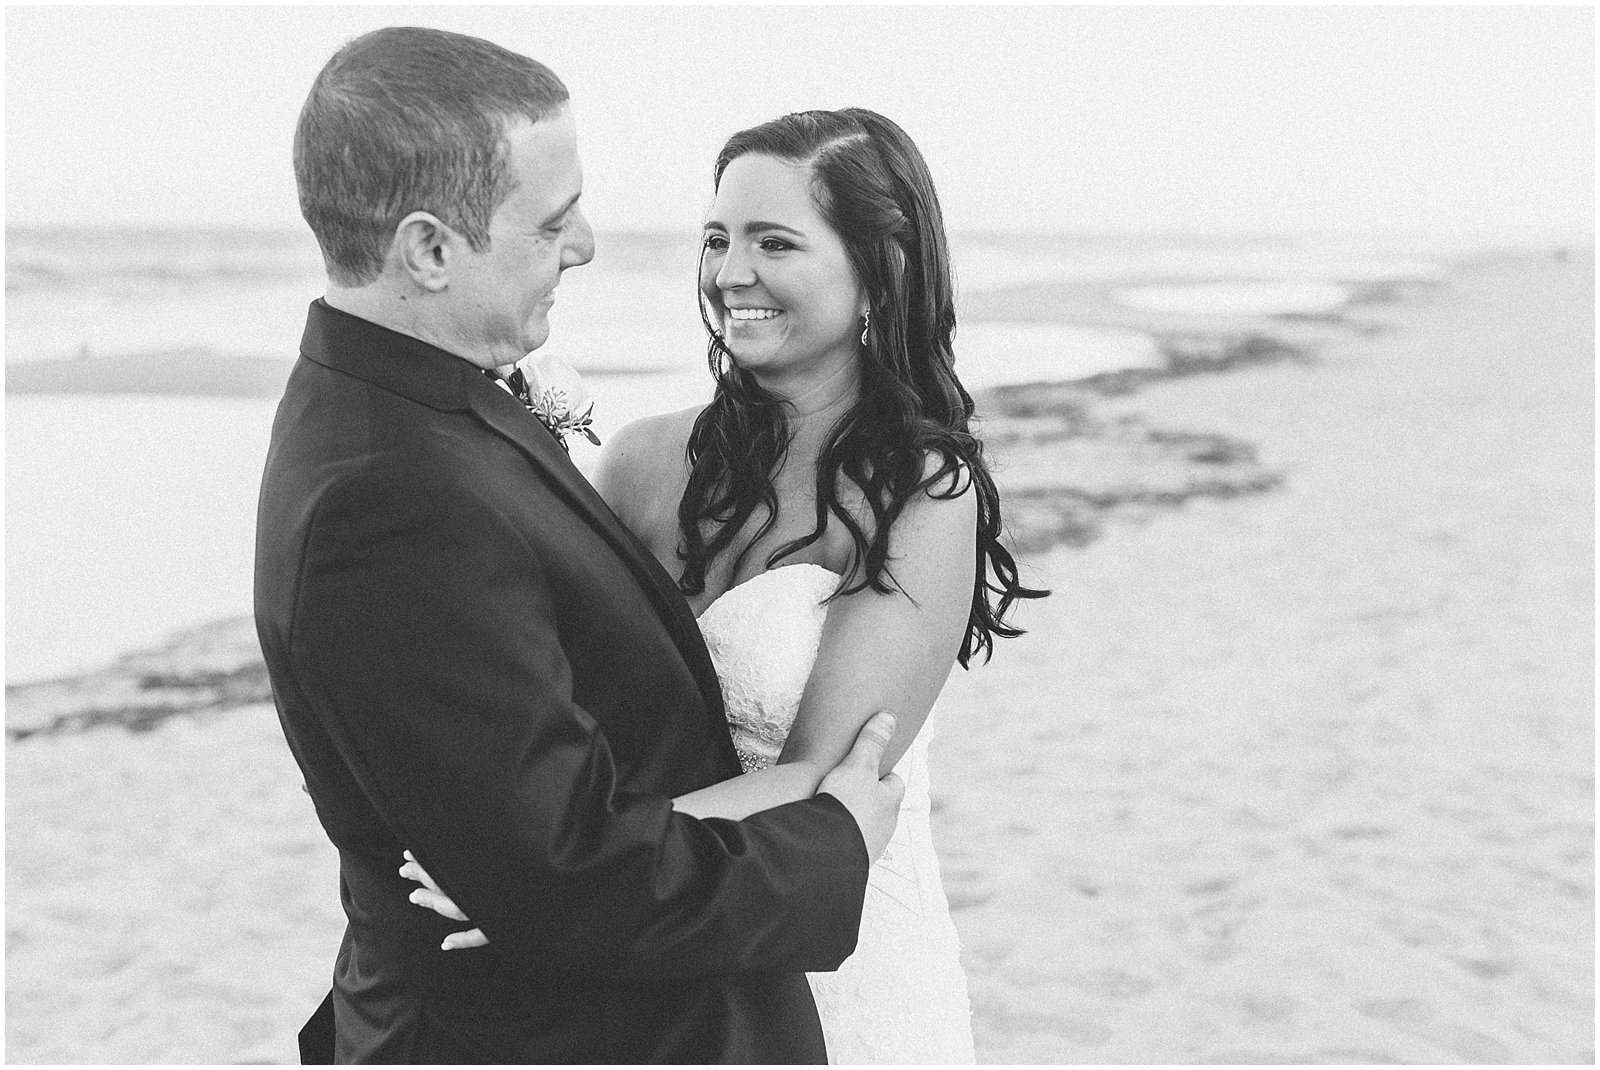 jessica_ryan_photography_wedding_virginia_beach_virginia_wedding_photographer_candid_wedding_photography_lifestyle_photojournalistic_real_moments_0159